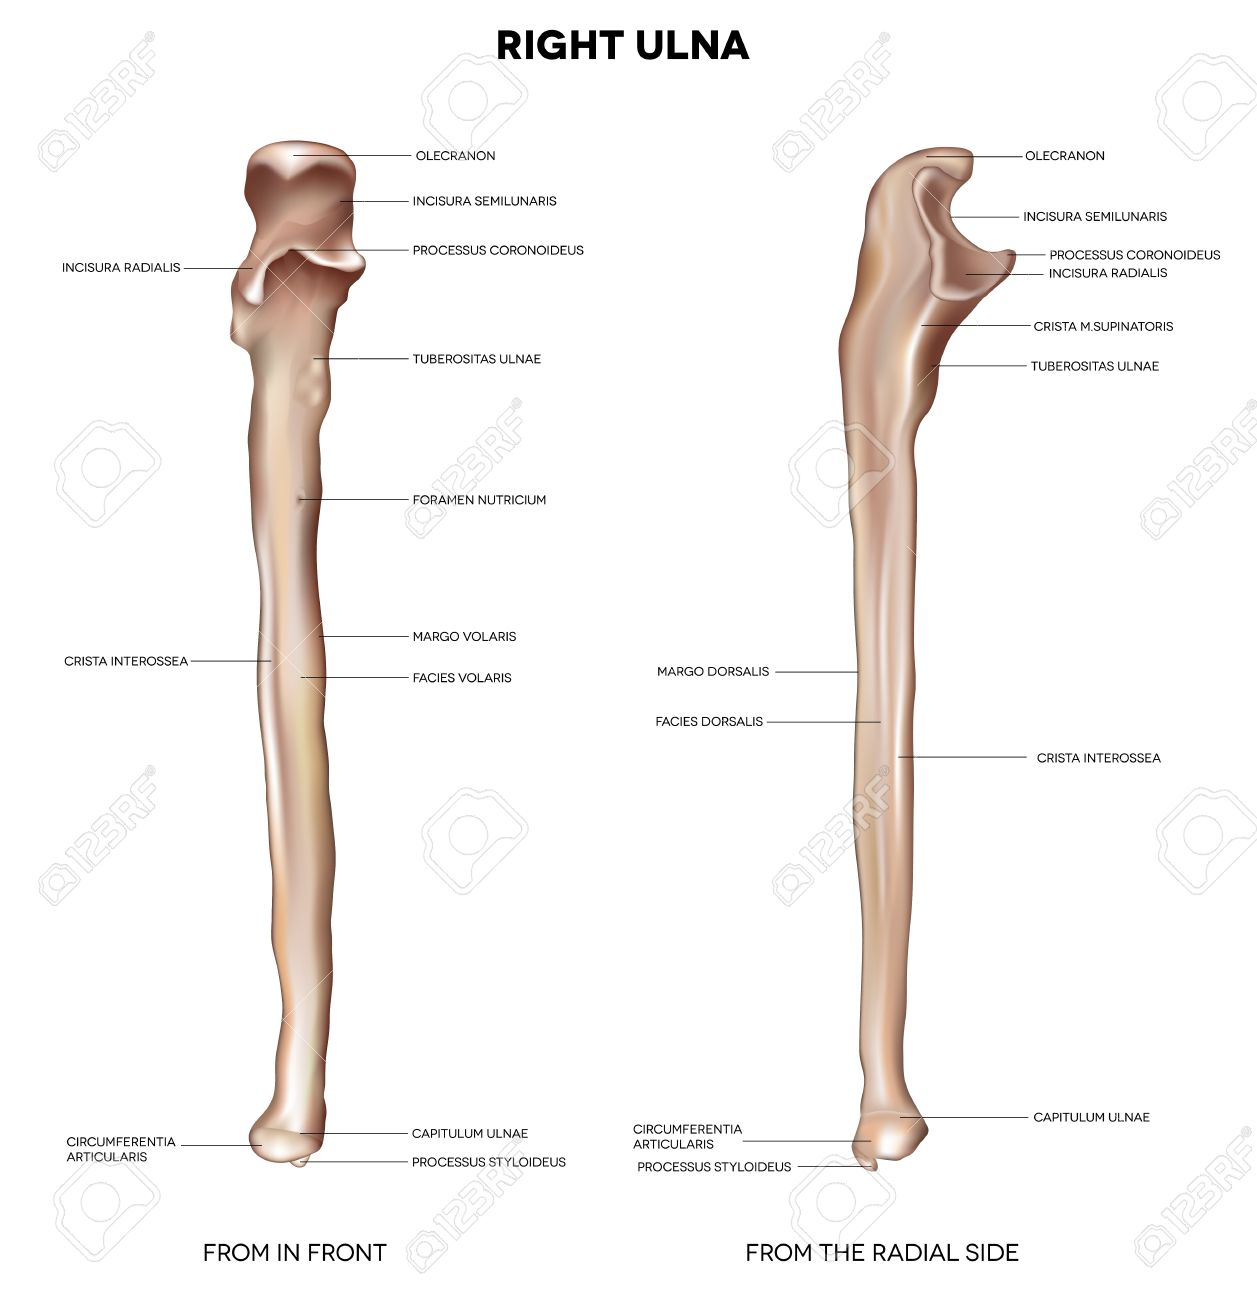 Ulna Detailed Medical Illustration From In Front And The Radial ...